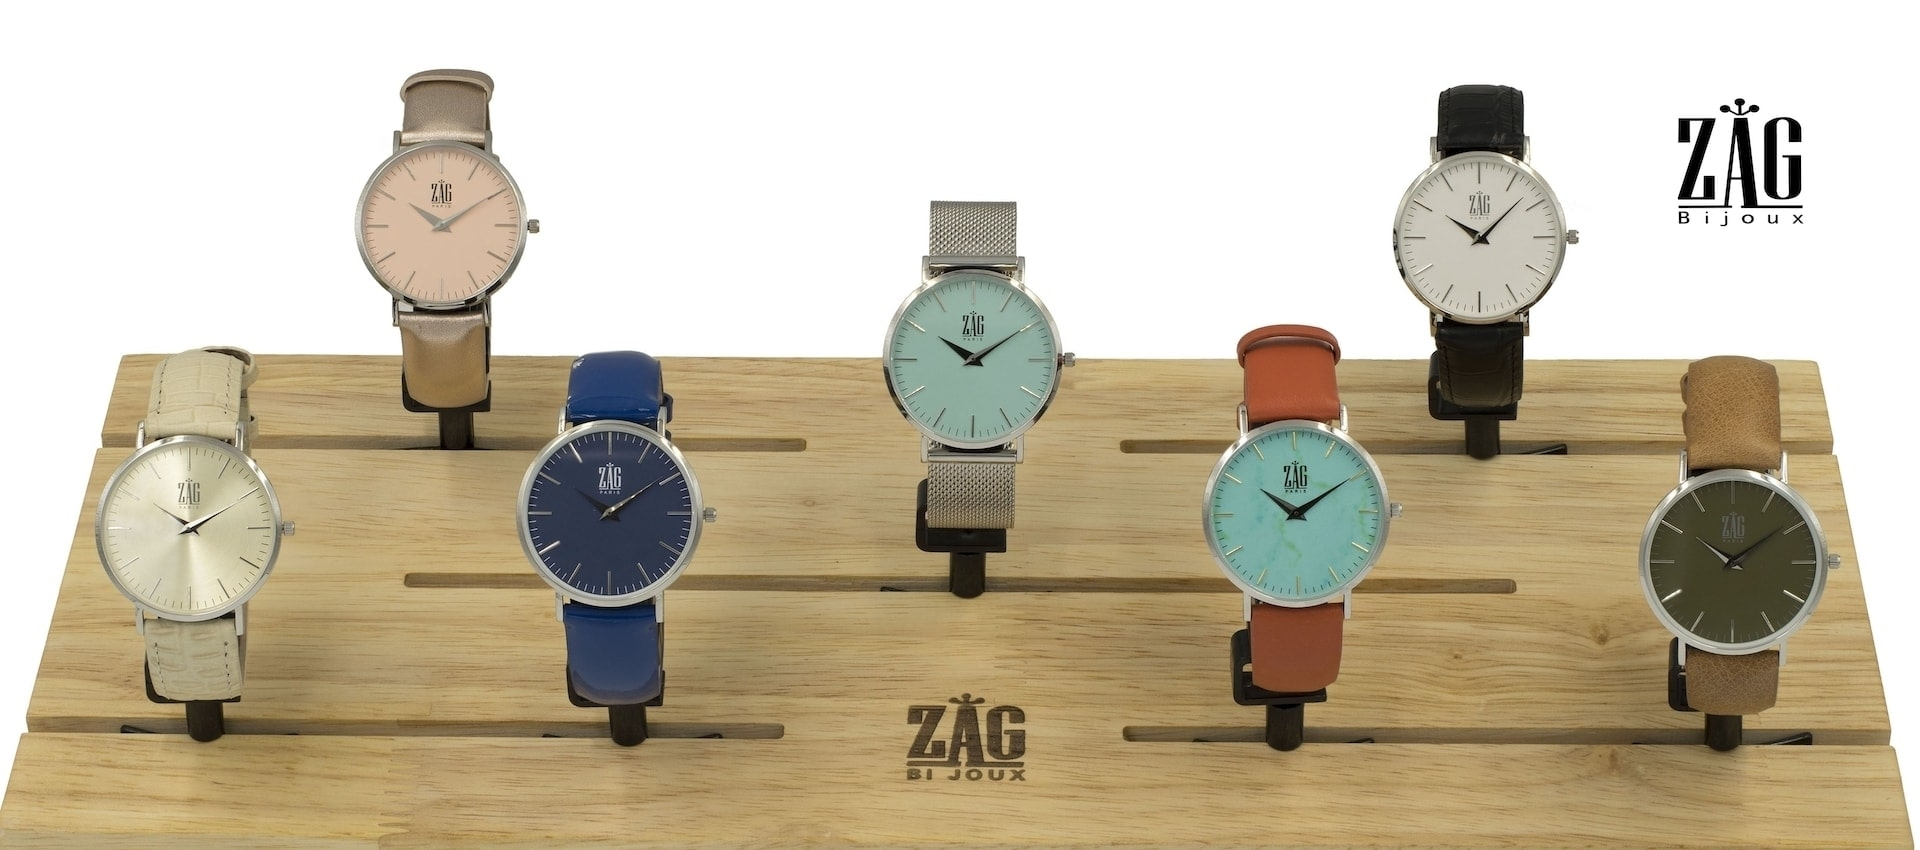 ZAG Bijoux watches catalog